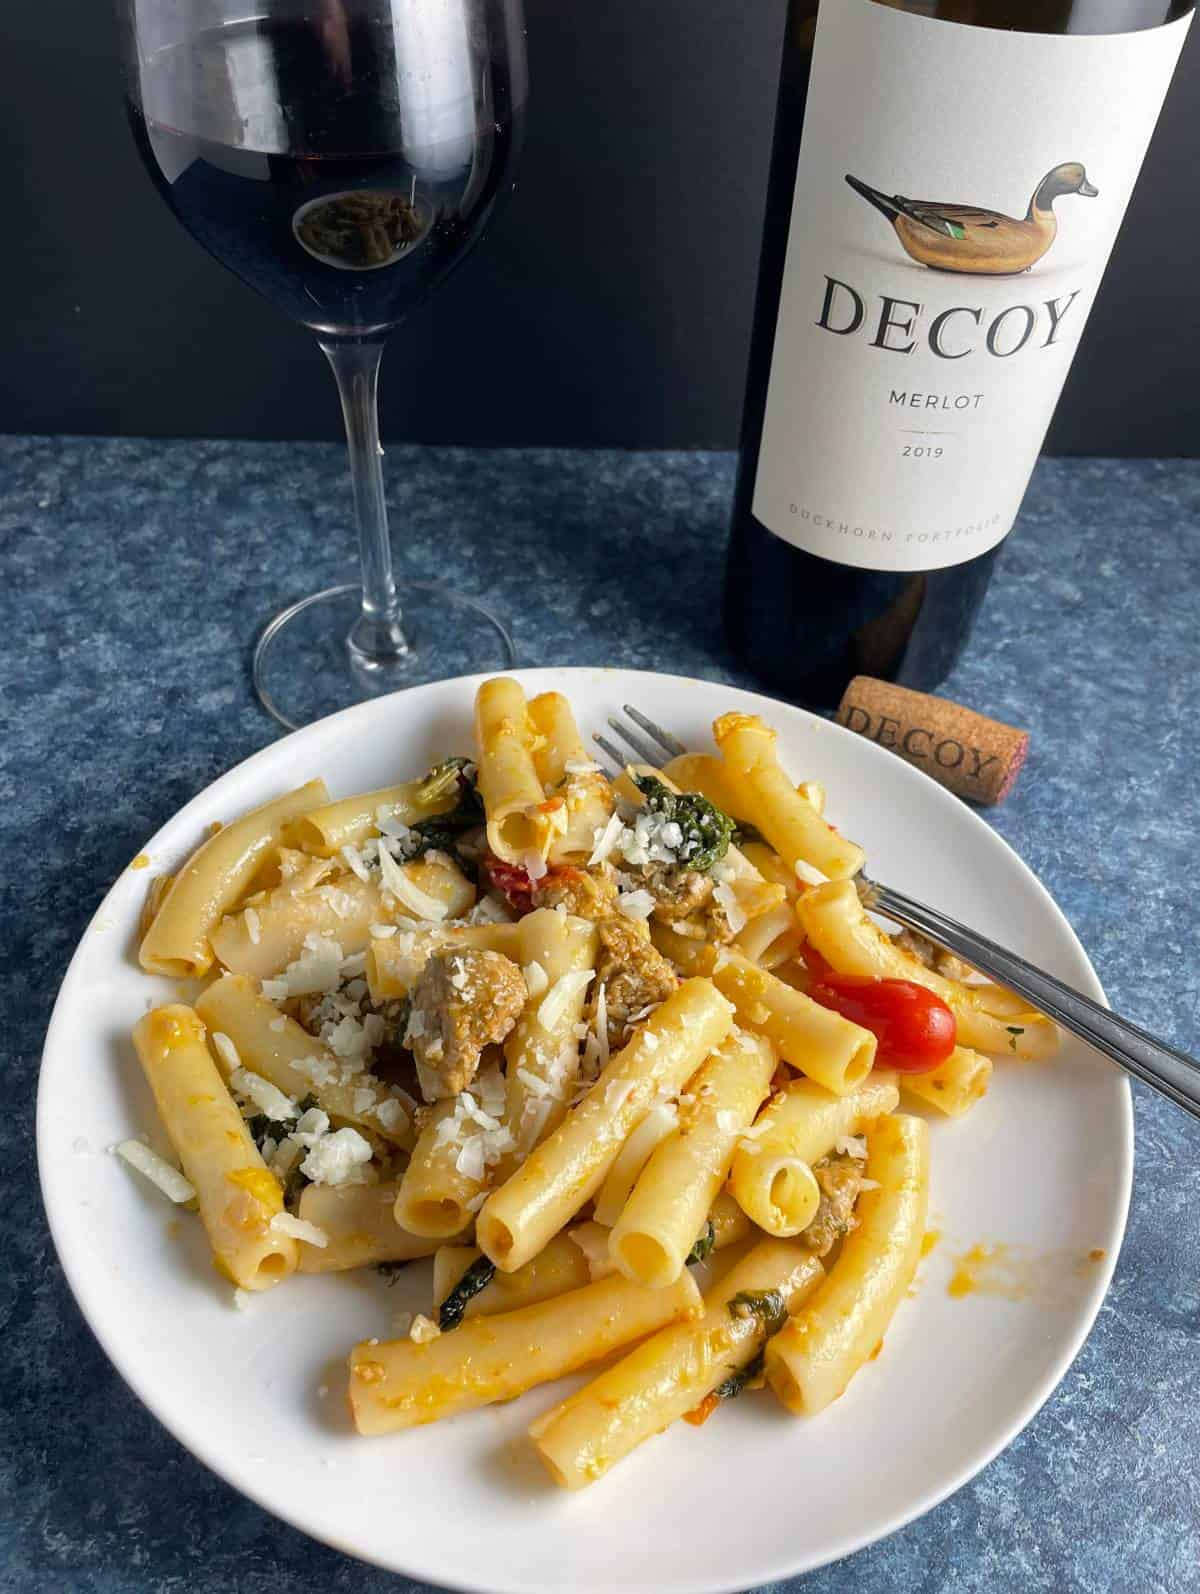 ziti pasta with sausage and greens on a white plate, served with a Merlot red wine.